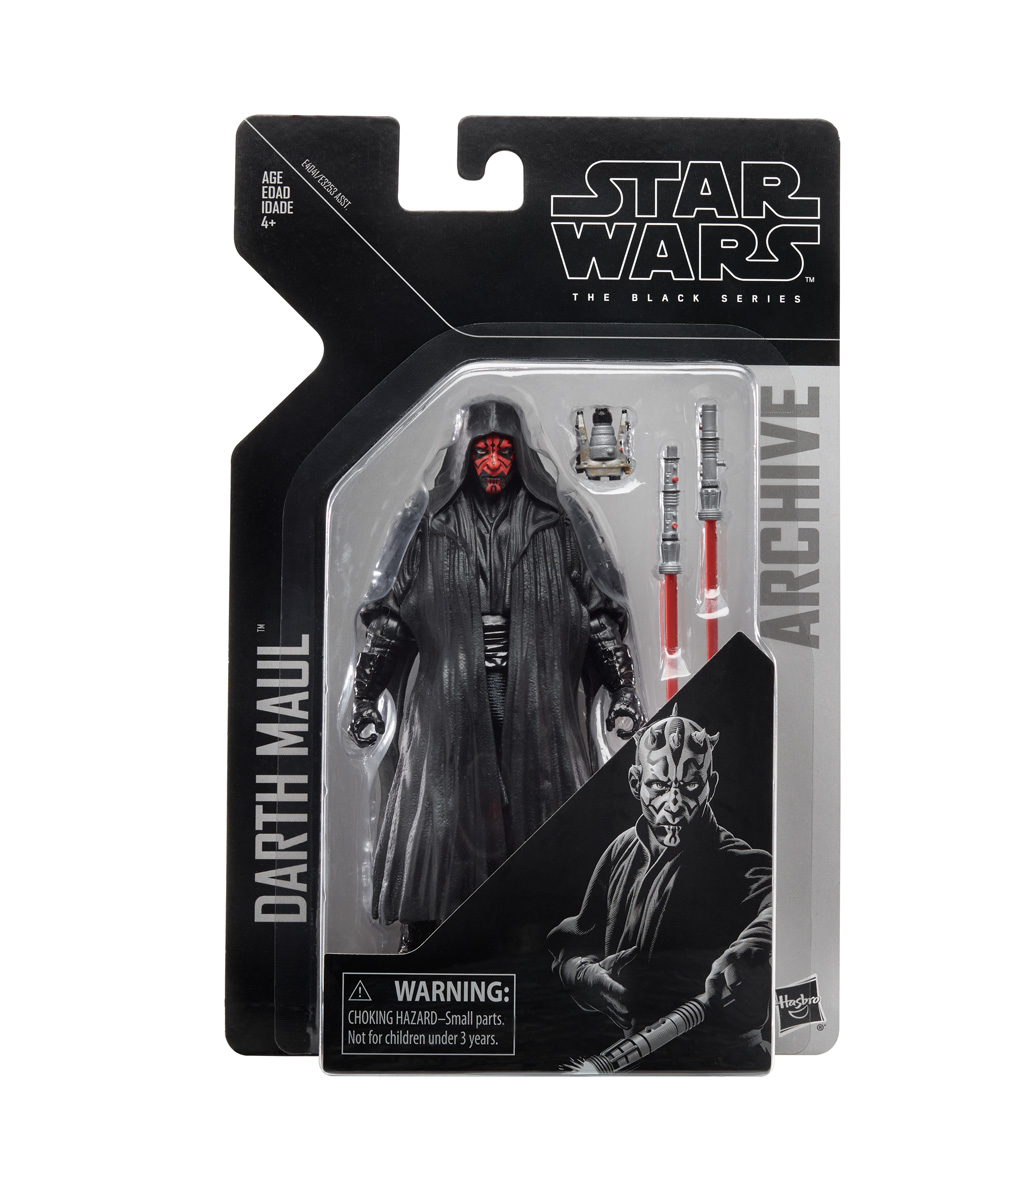 star-wars-the-black-series-archive-6-inch-figure-assortment-darth-maul-in-pck_1